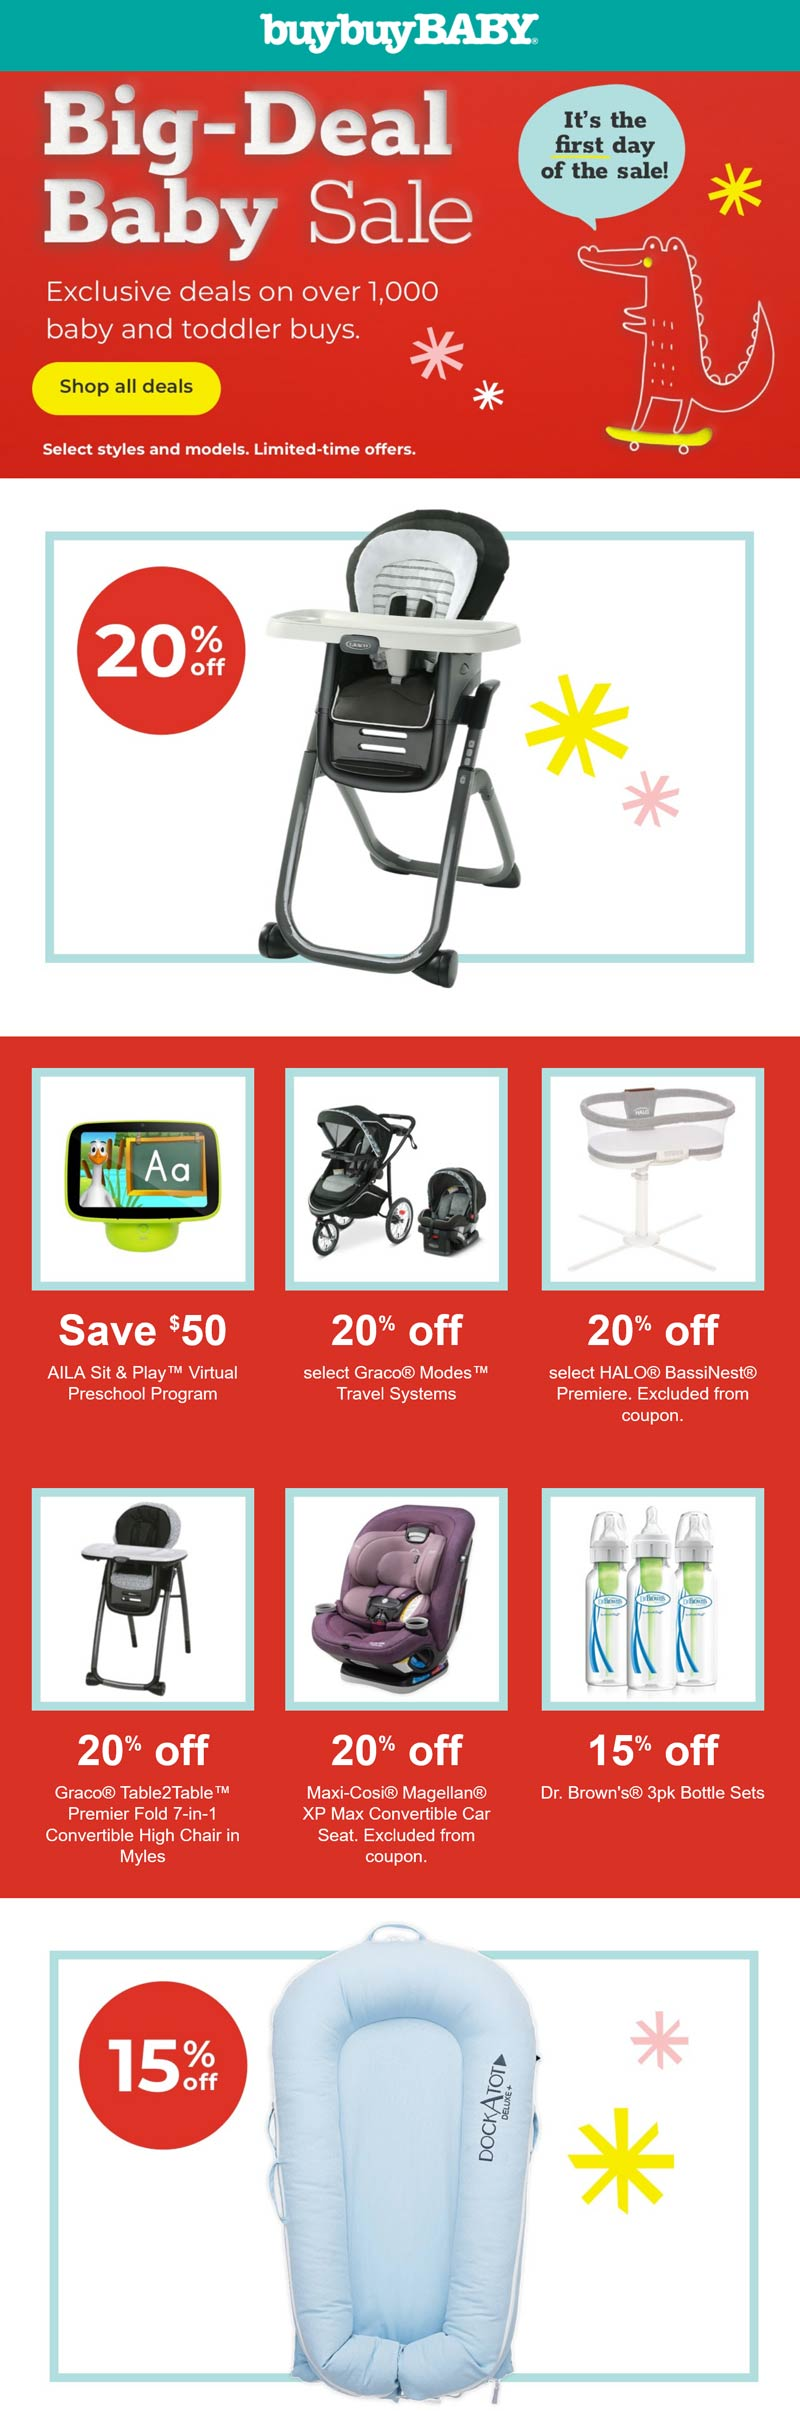 buybuy BABY coupons & promo code for [October 2021]